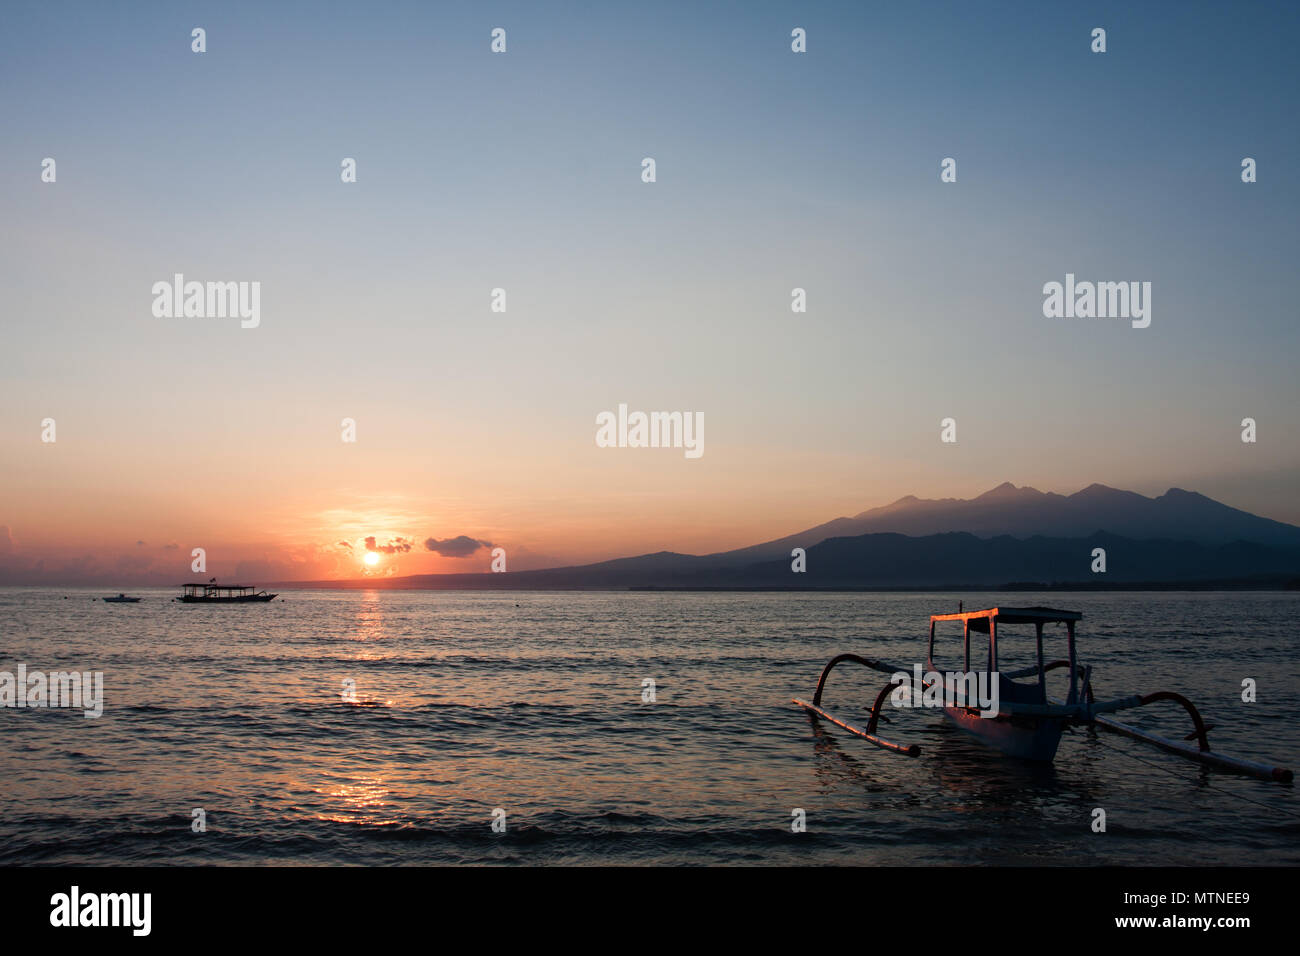 Sunrise on the beach at Gili Air. Rinjani volcano in the background. Indonesia. - Stock Image